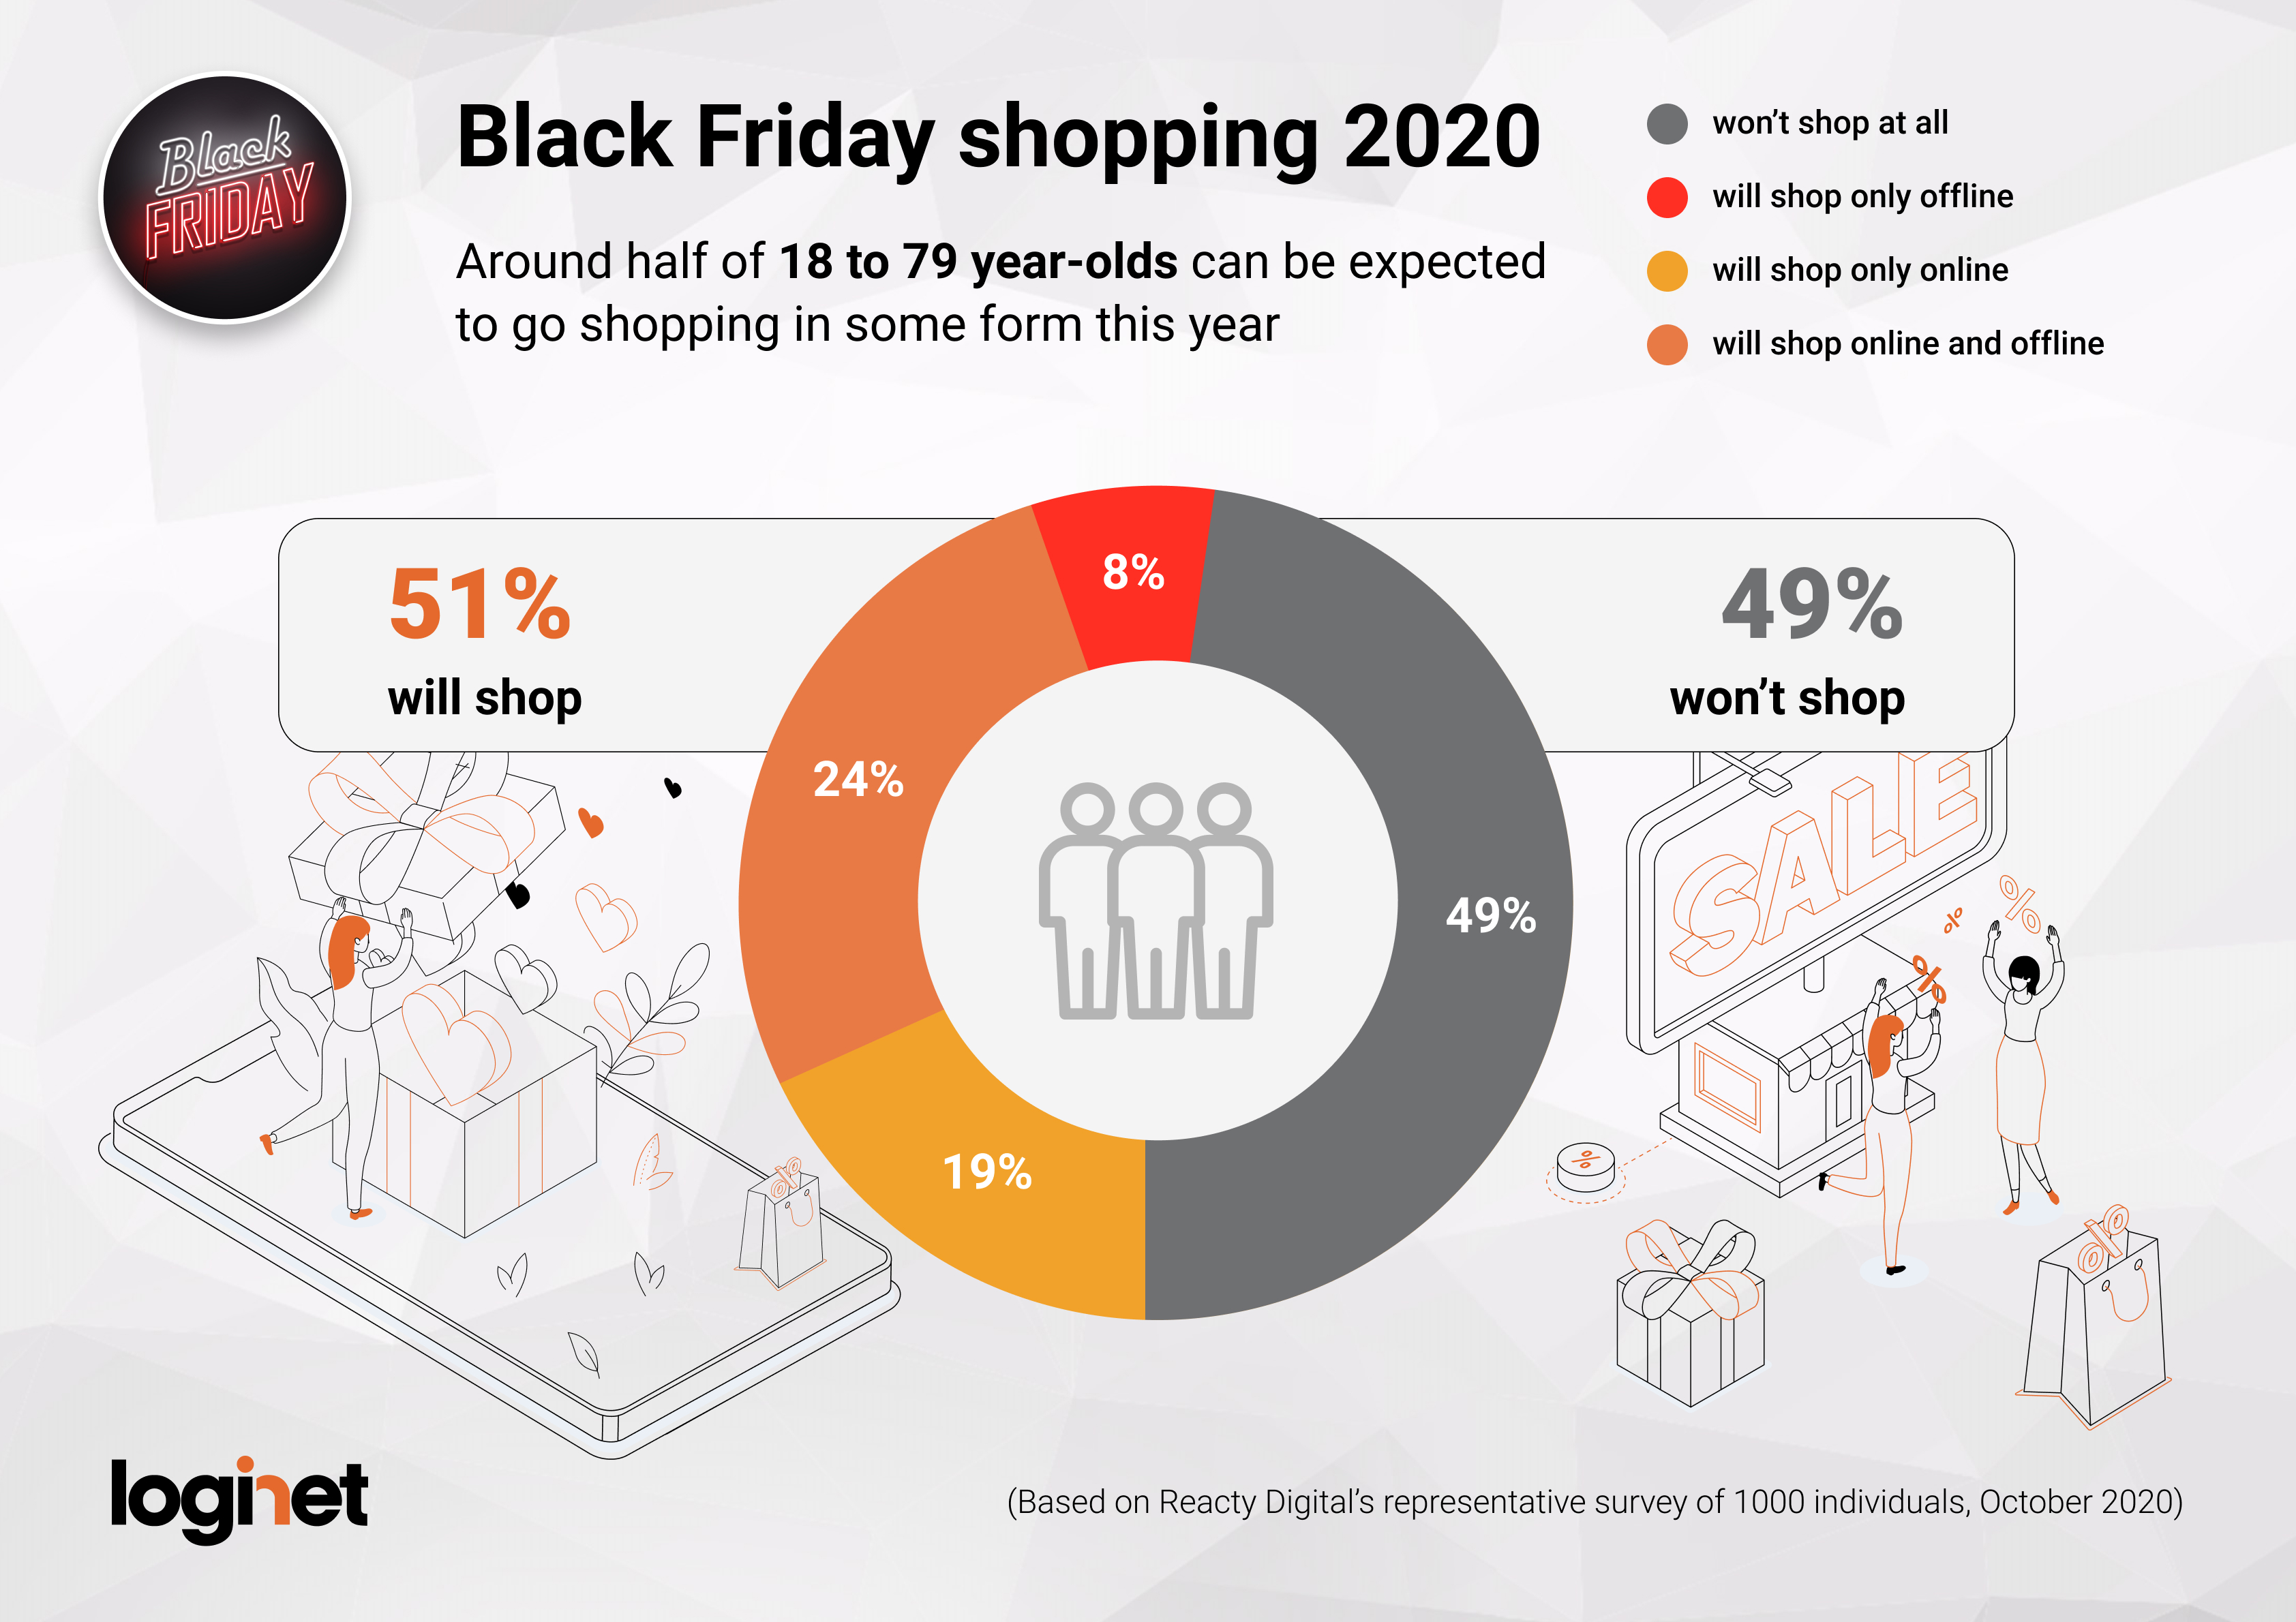 Black Friday, Hungary_Willingness to shop_2020